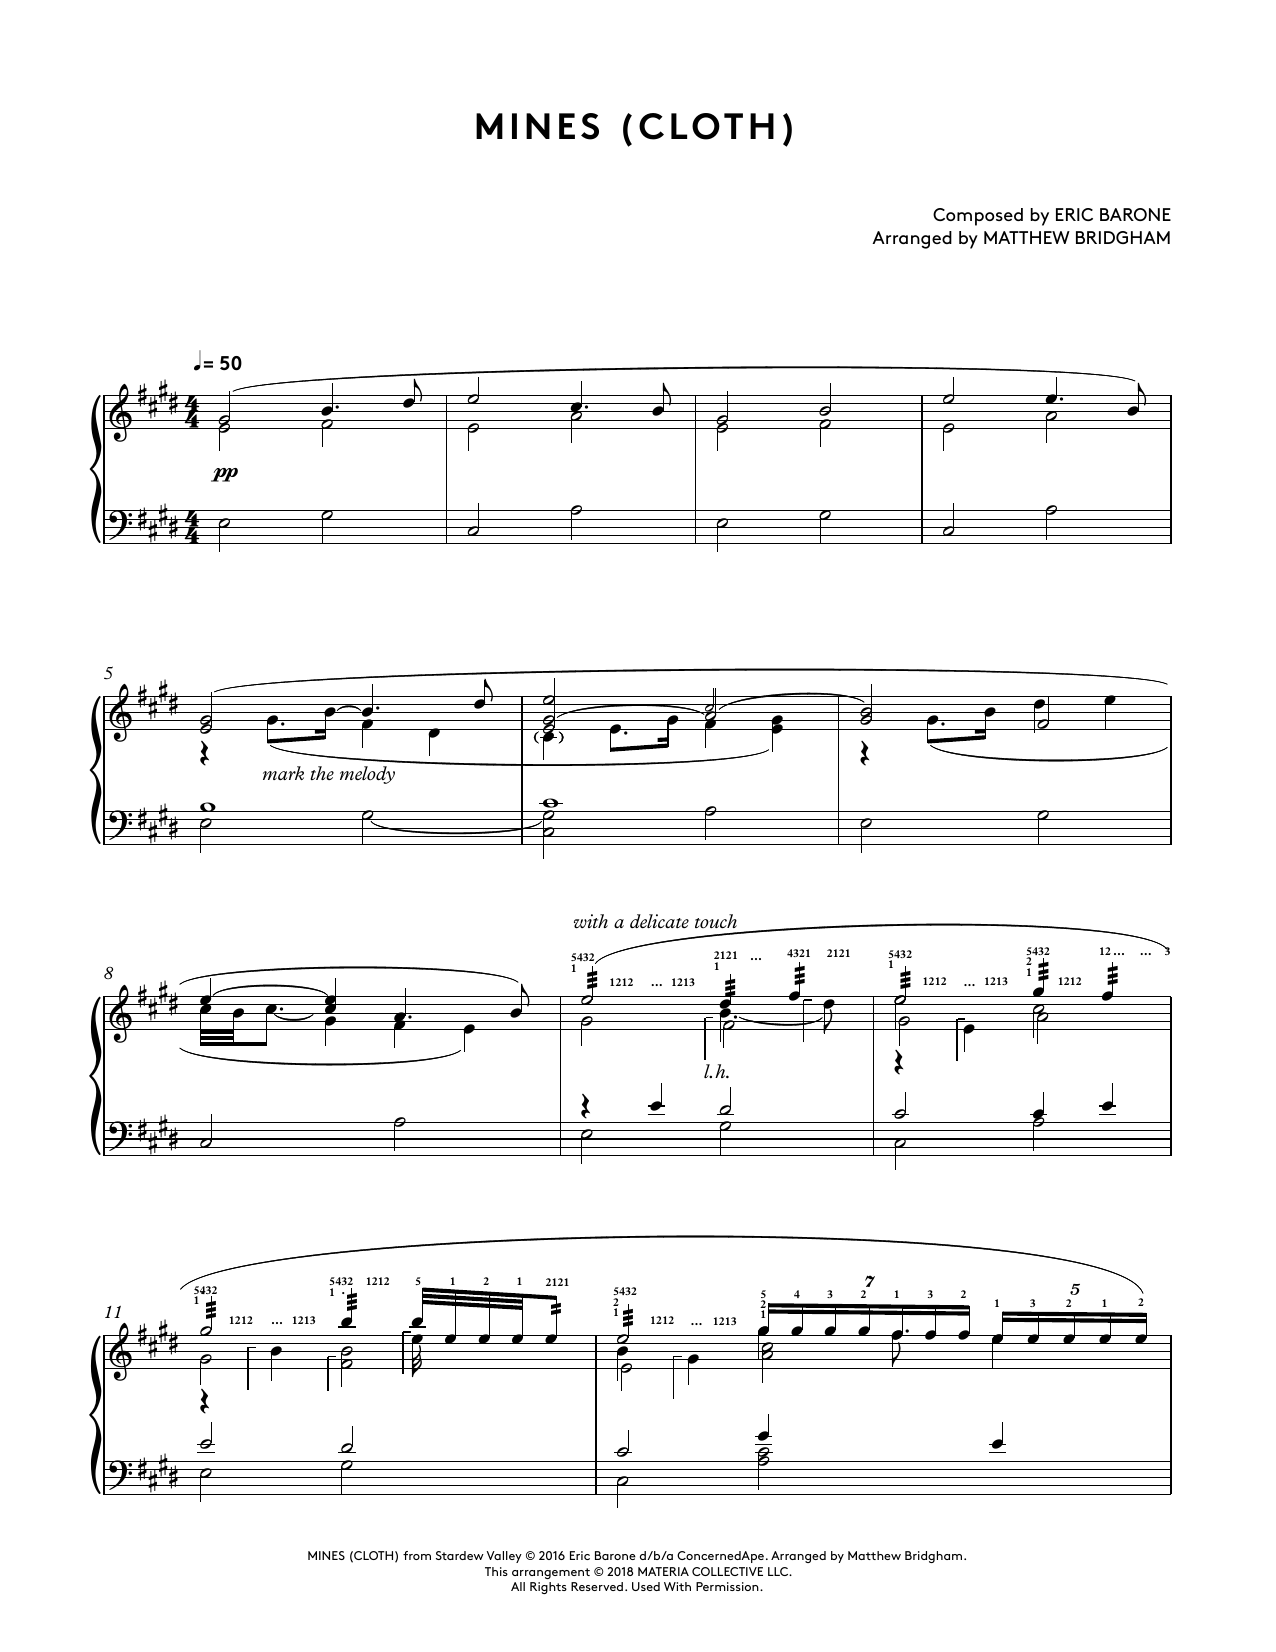 Mines (Cloth) (from Stardew Valley Piano Collections) (arr. Matthew Bridgham) (Piano Solo)